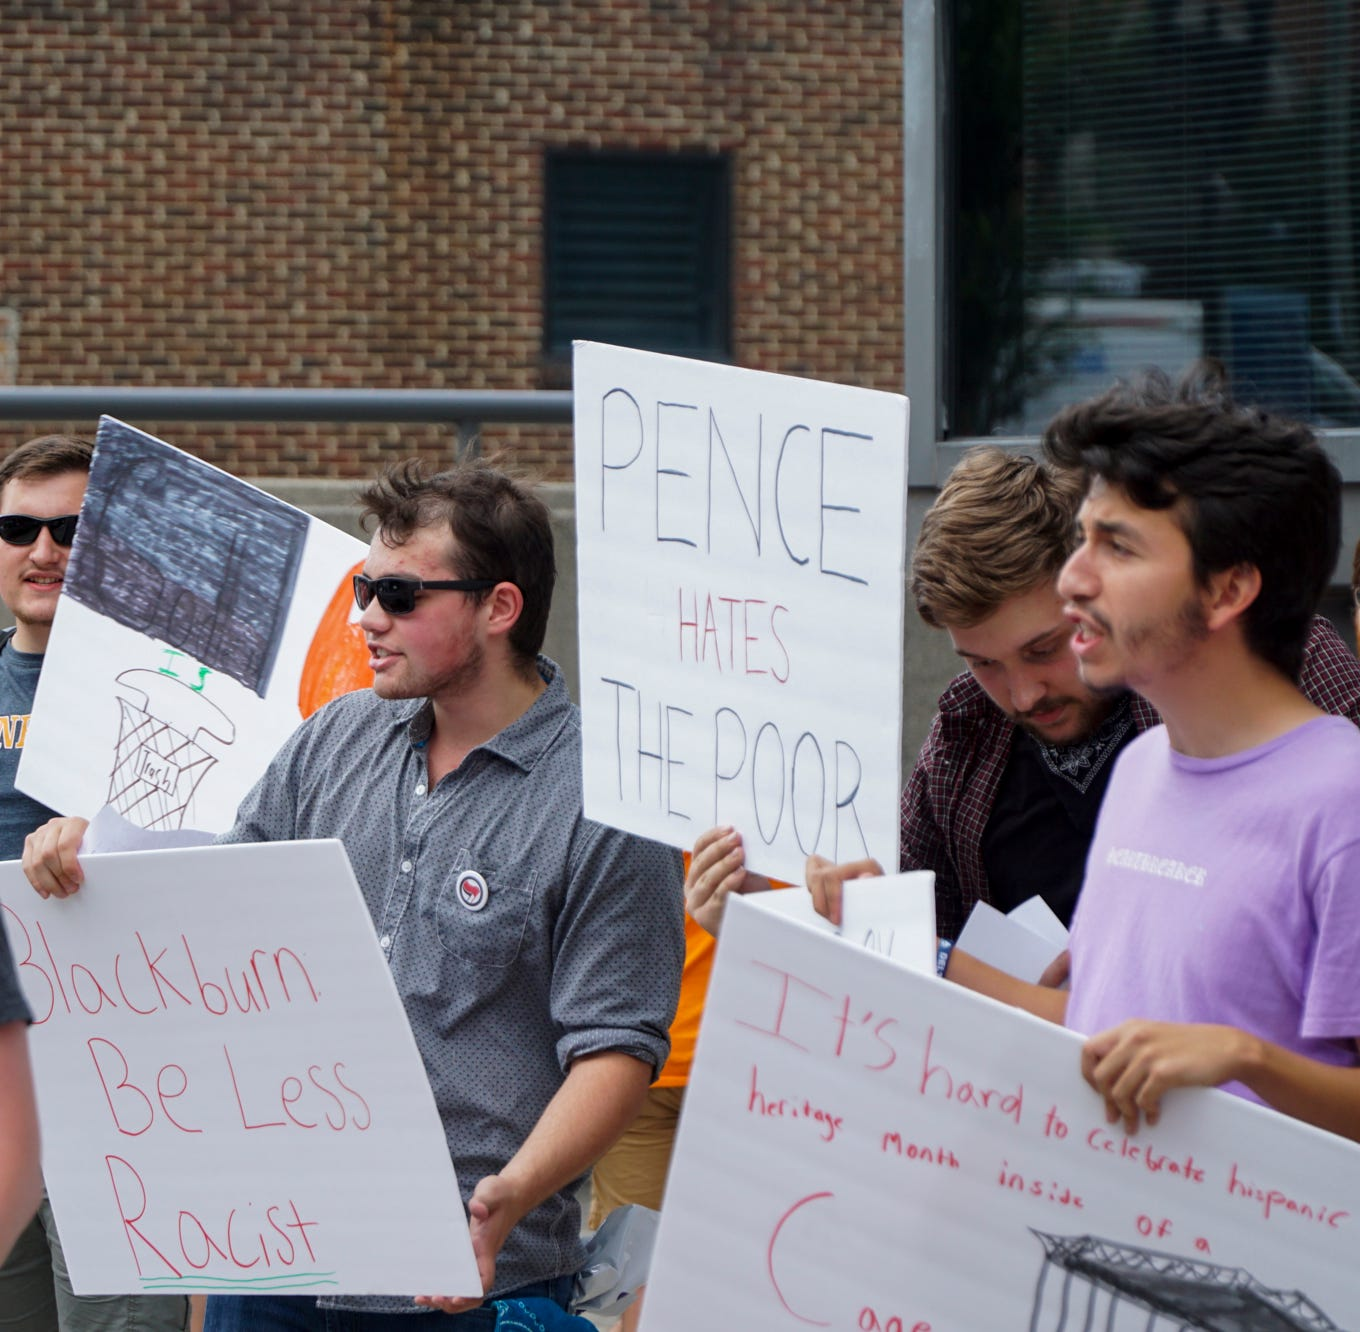 Mike Pence, Marsha Blackburn visit to downtown Knoxville draws protesters